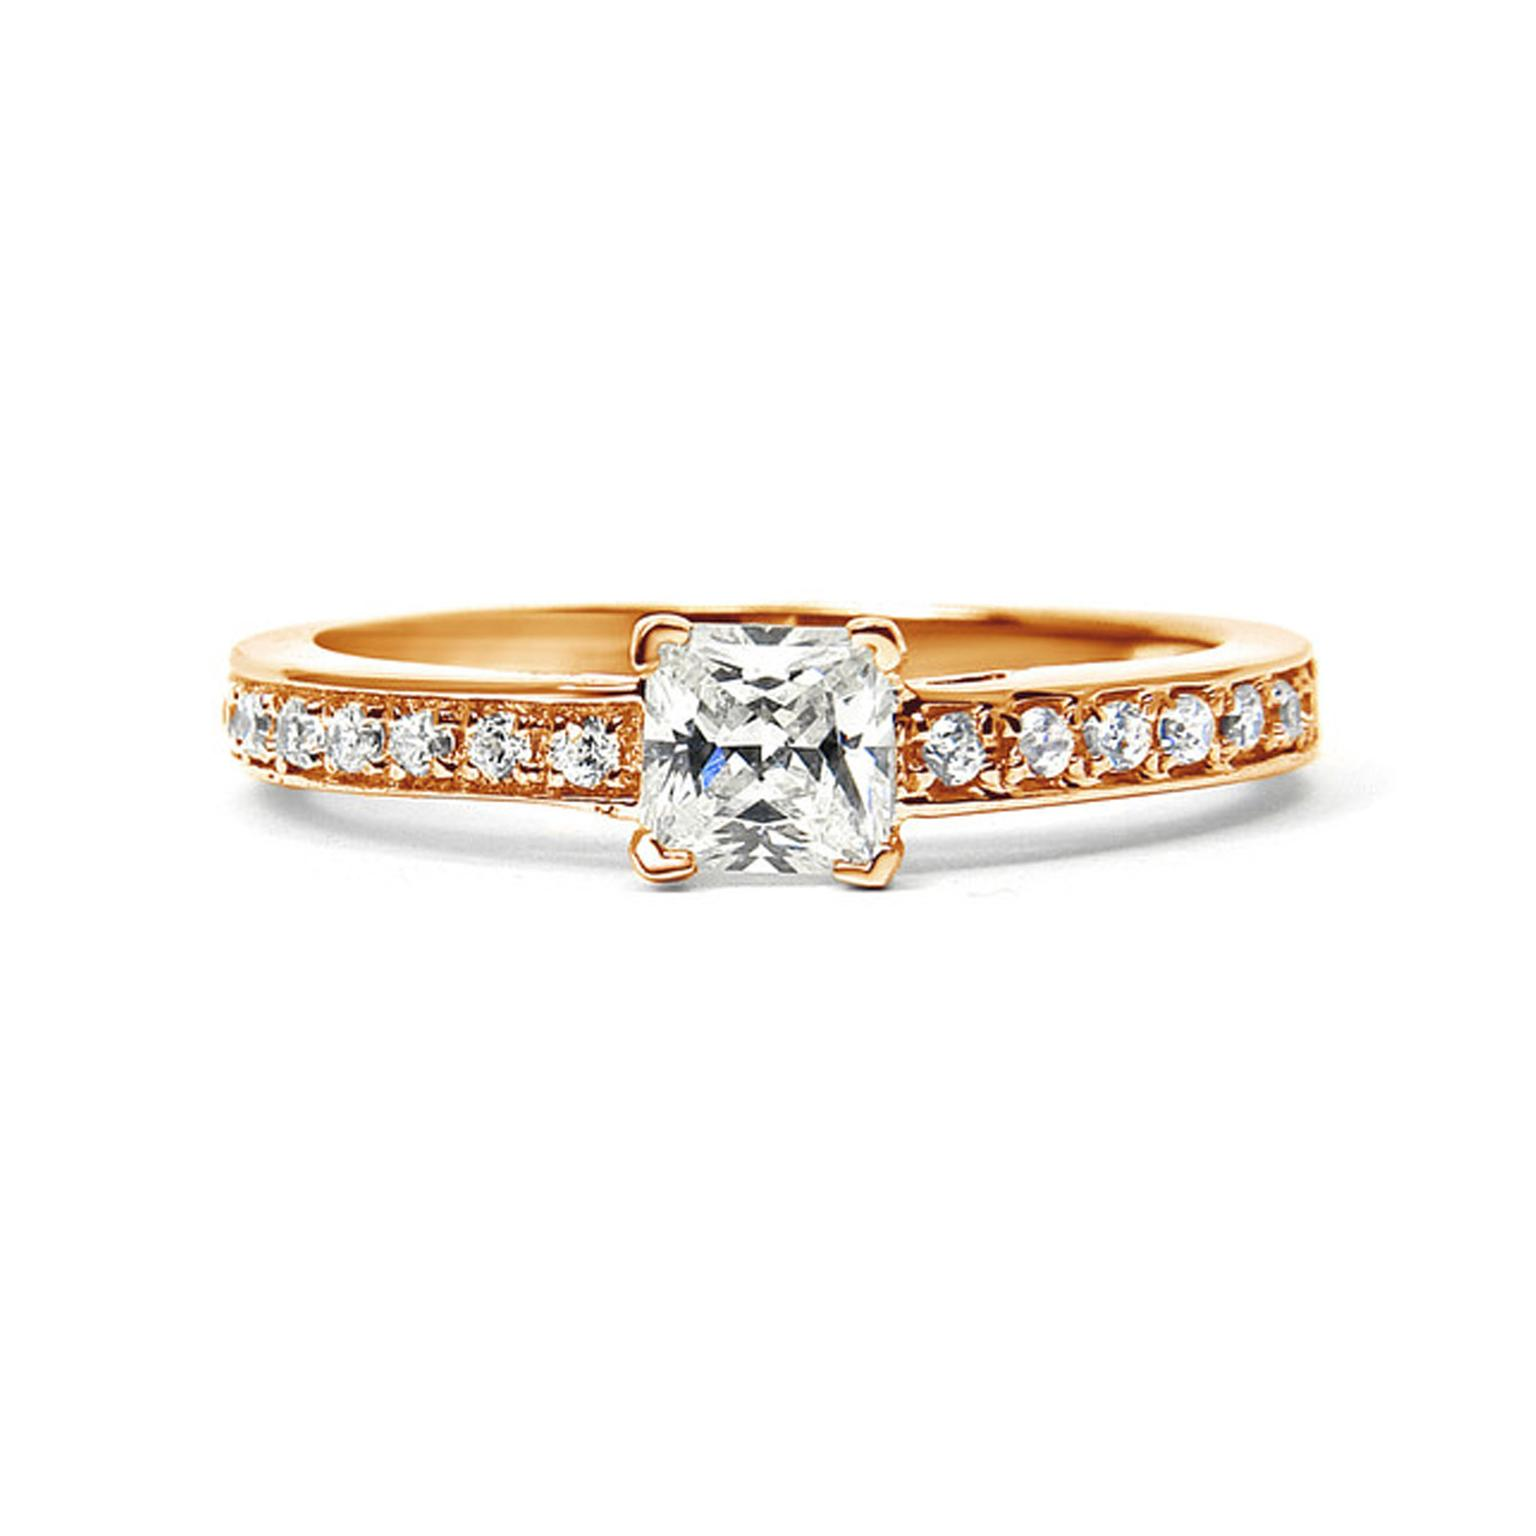 A-Lebrusan-Supernova-Ethical-Ring-zoom